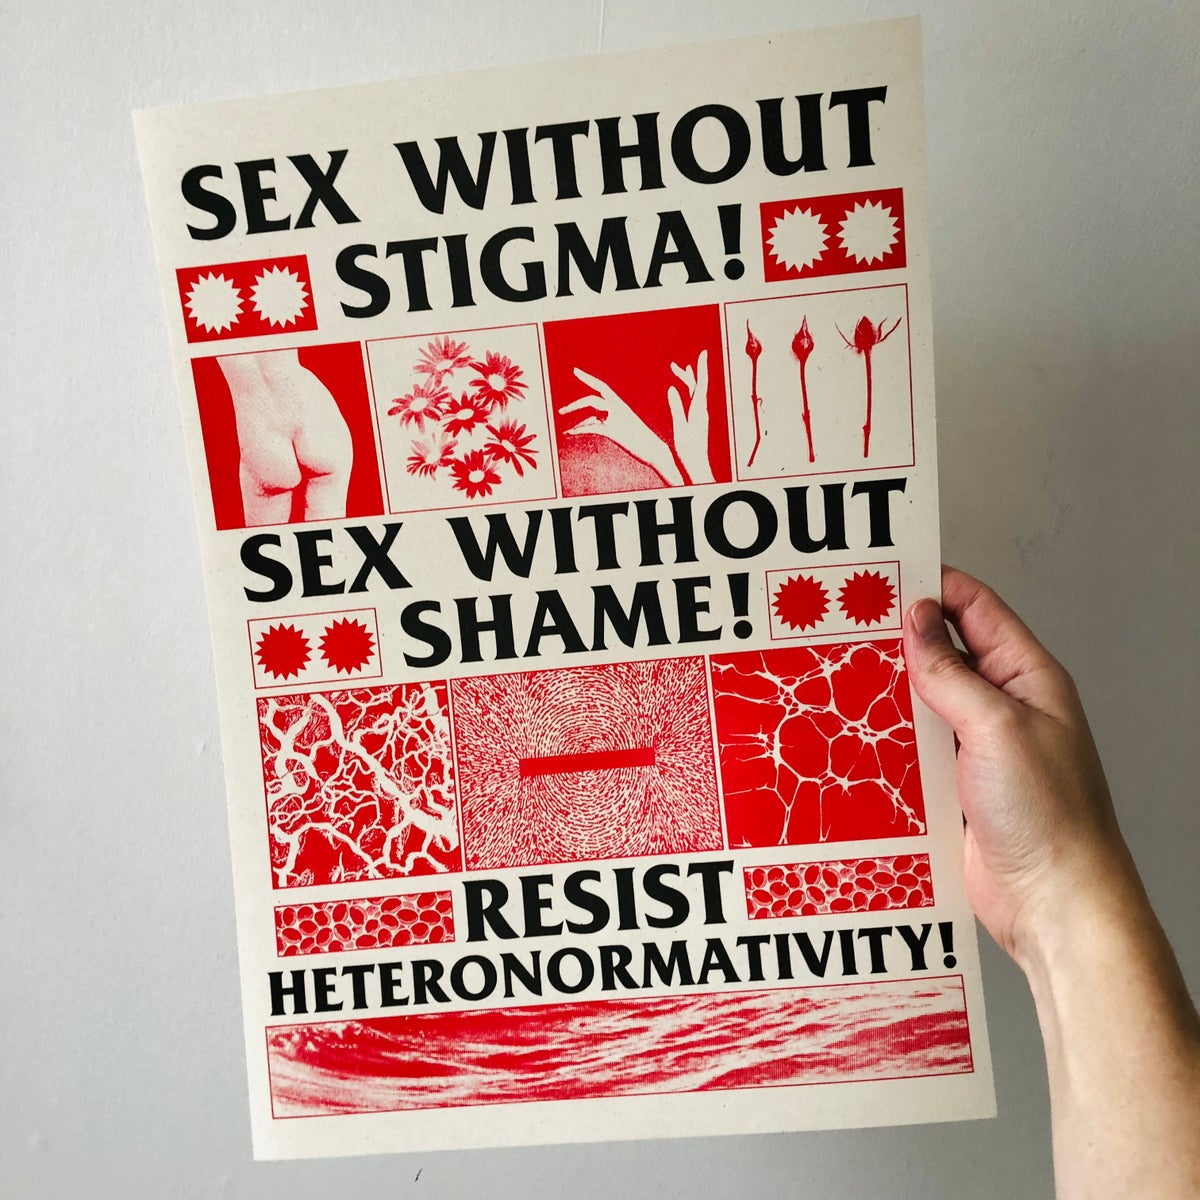 Image of Sex Without Stigma Sex Without Shame A3 riso print